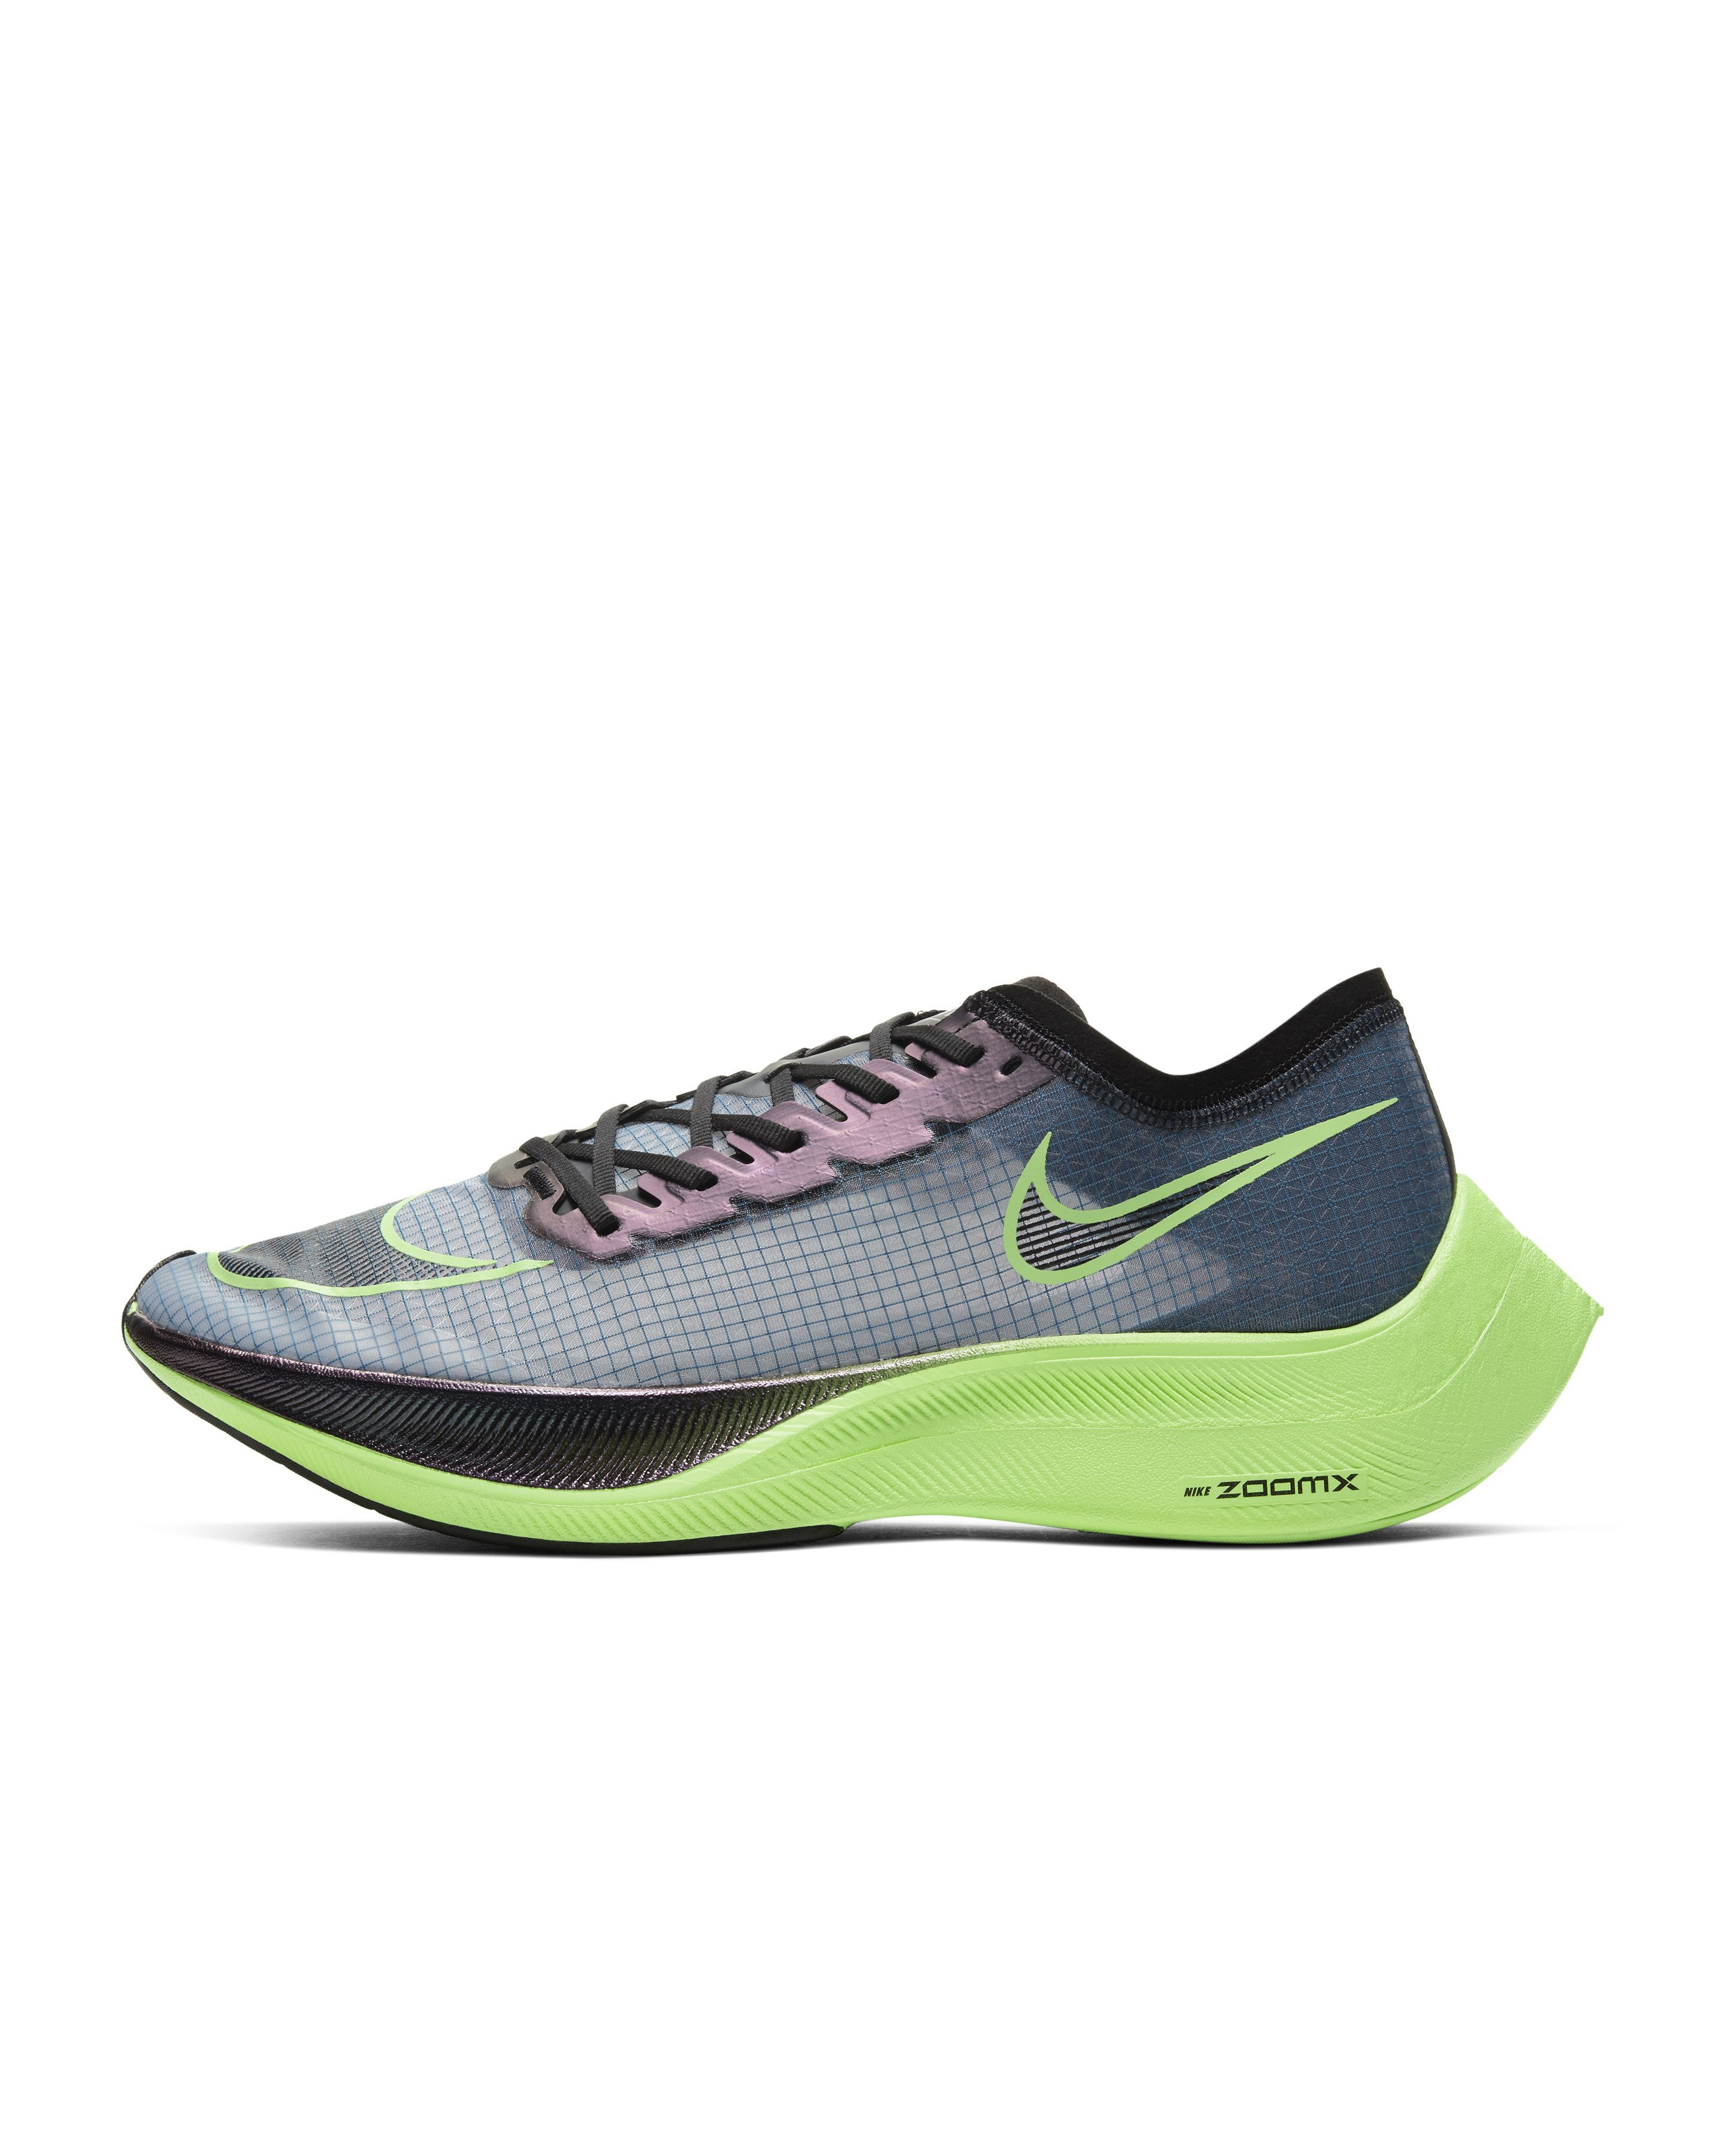 Volverse fluido Isla Stewart  The best Nike running shoes 2020